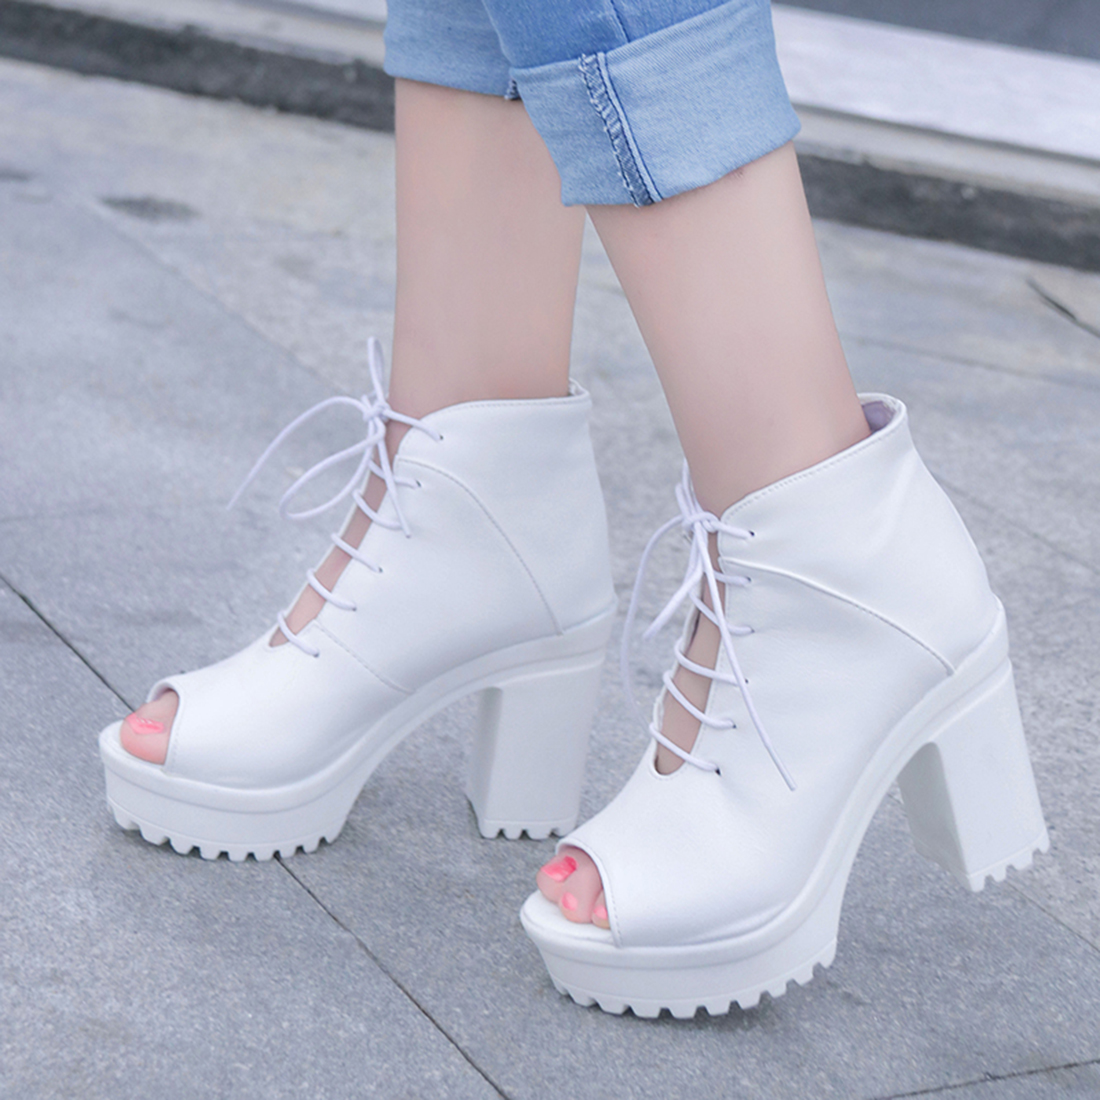 2017 Summer shoes woman Platform Sandals Women Soft Leather Casual Open Toe Gladiator wedges Women boots zapatos mujer чехлы для телефонов prime чехол книжка для xiaomi redmi 4x prime book